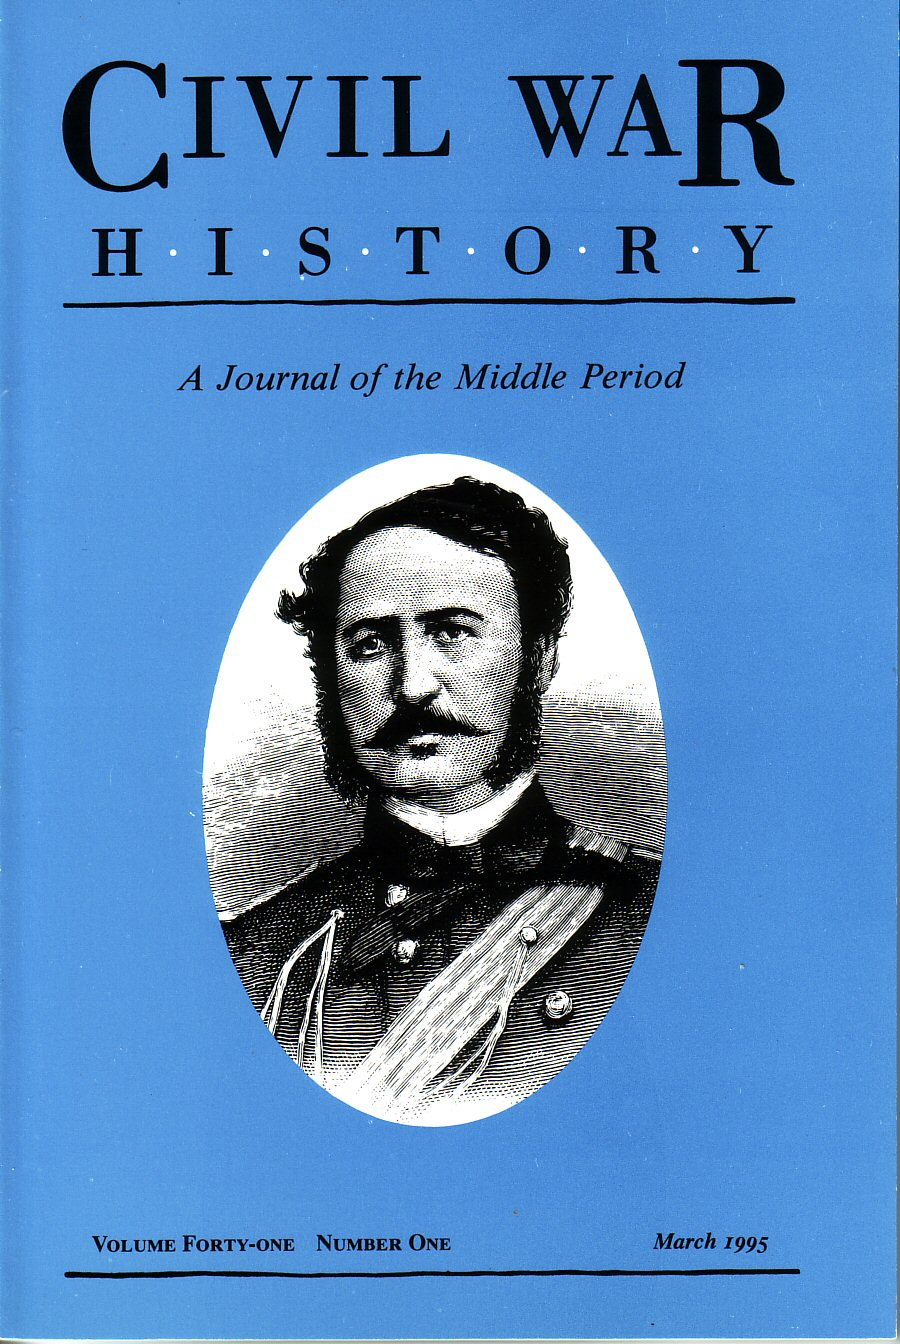 Civil War History, Volume 41, Number 1 (March 1995)